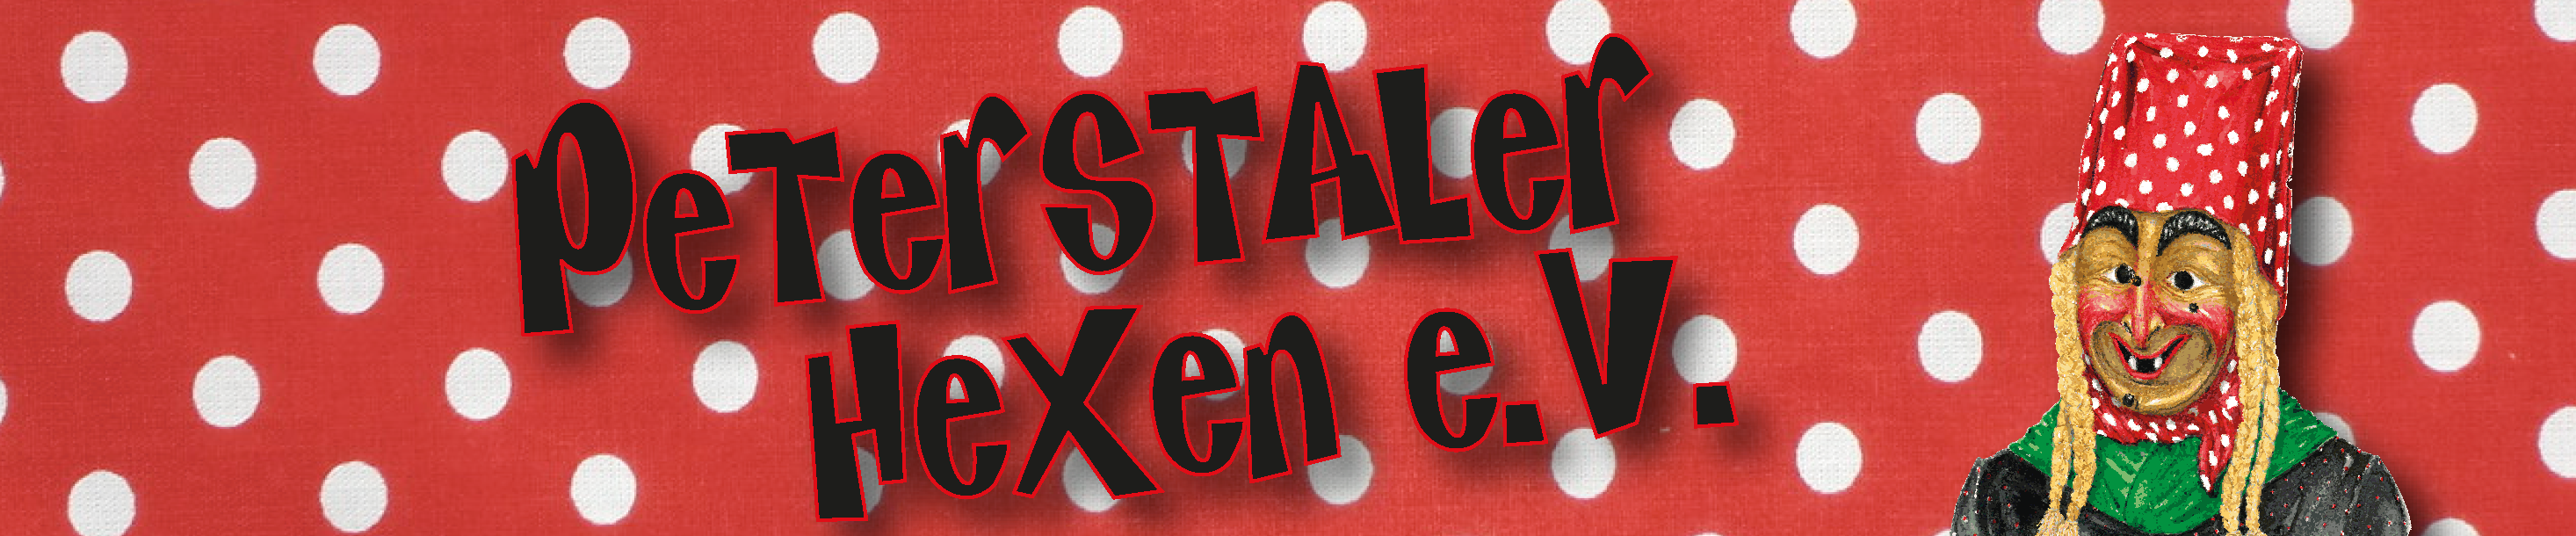 Peterstaler Hexen